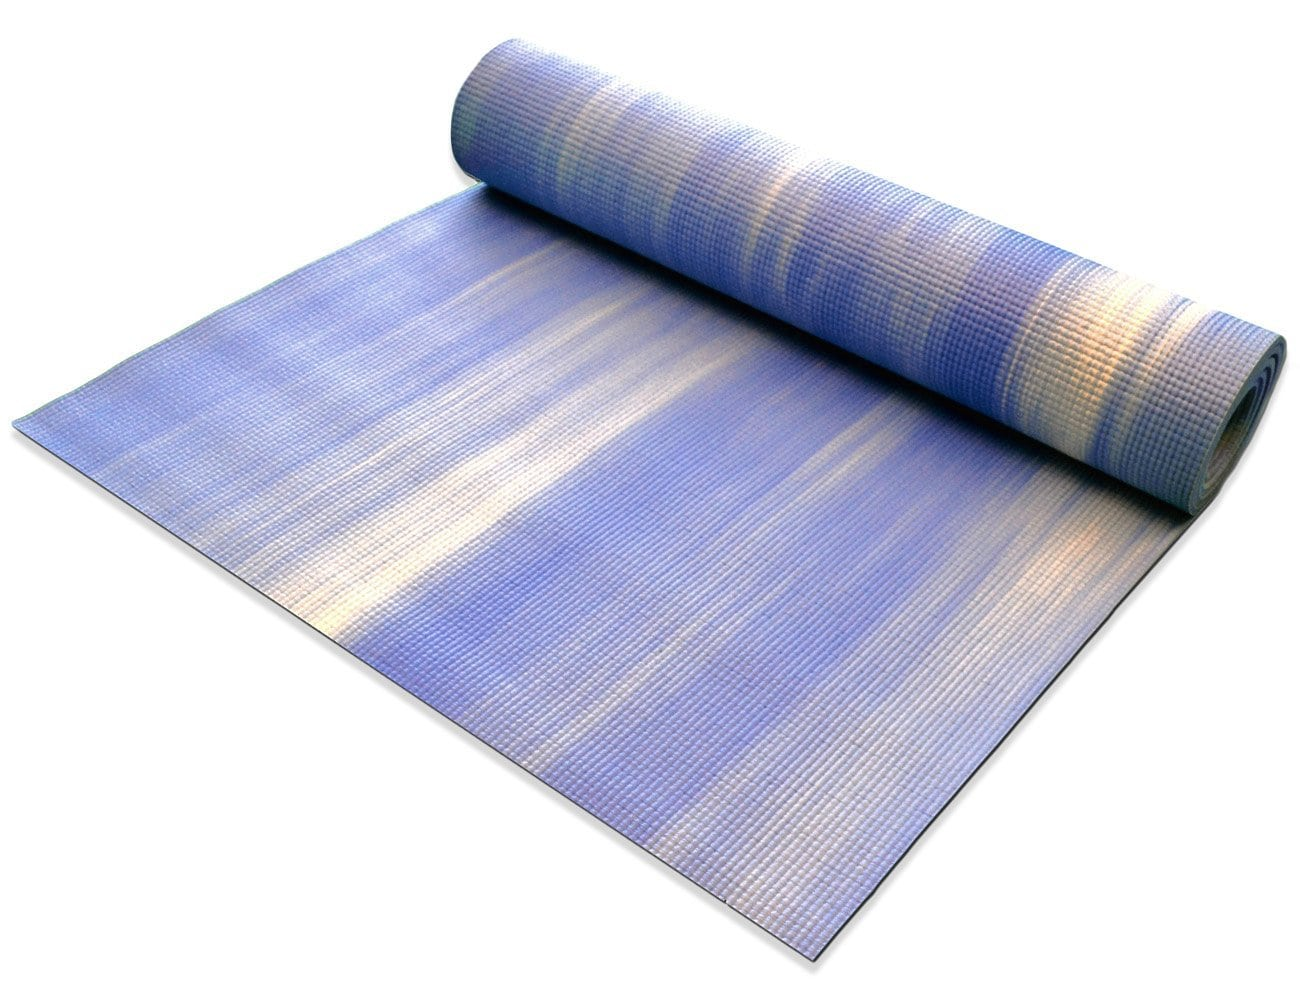 cool-breeze-yoga-mat.jpg